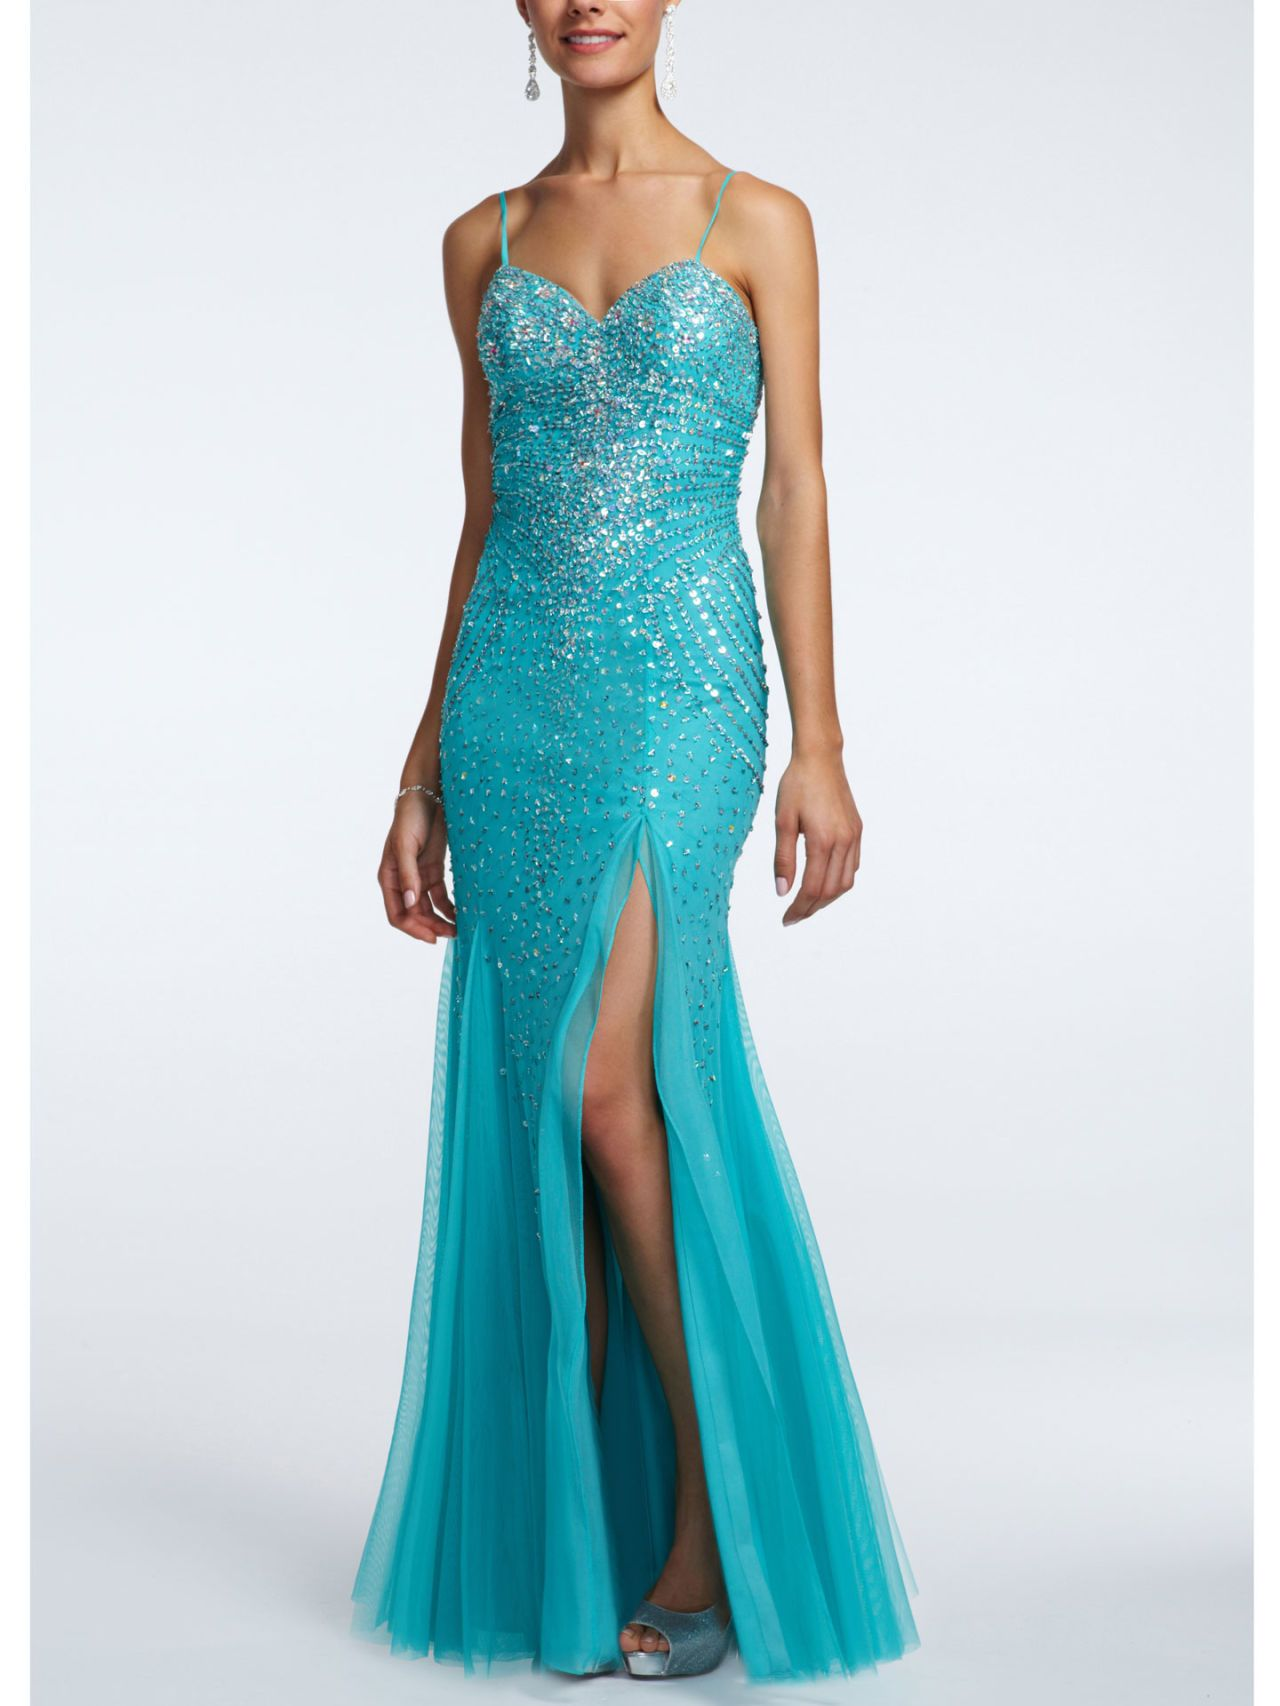 Sequin Prom Dresses - Prom Dress Trends 2014